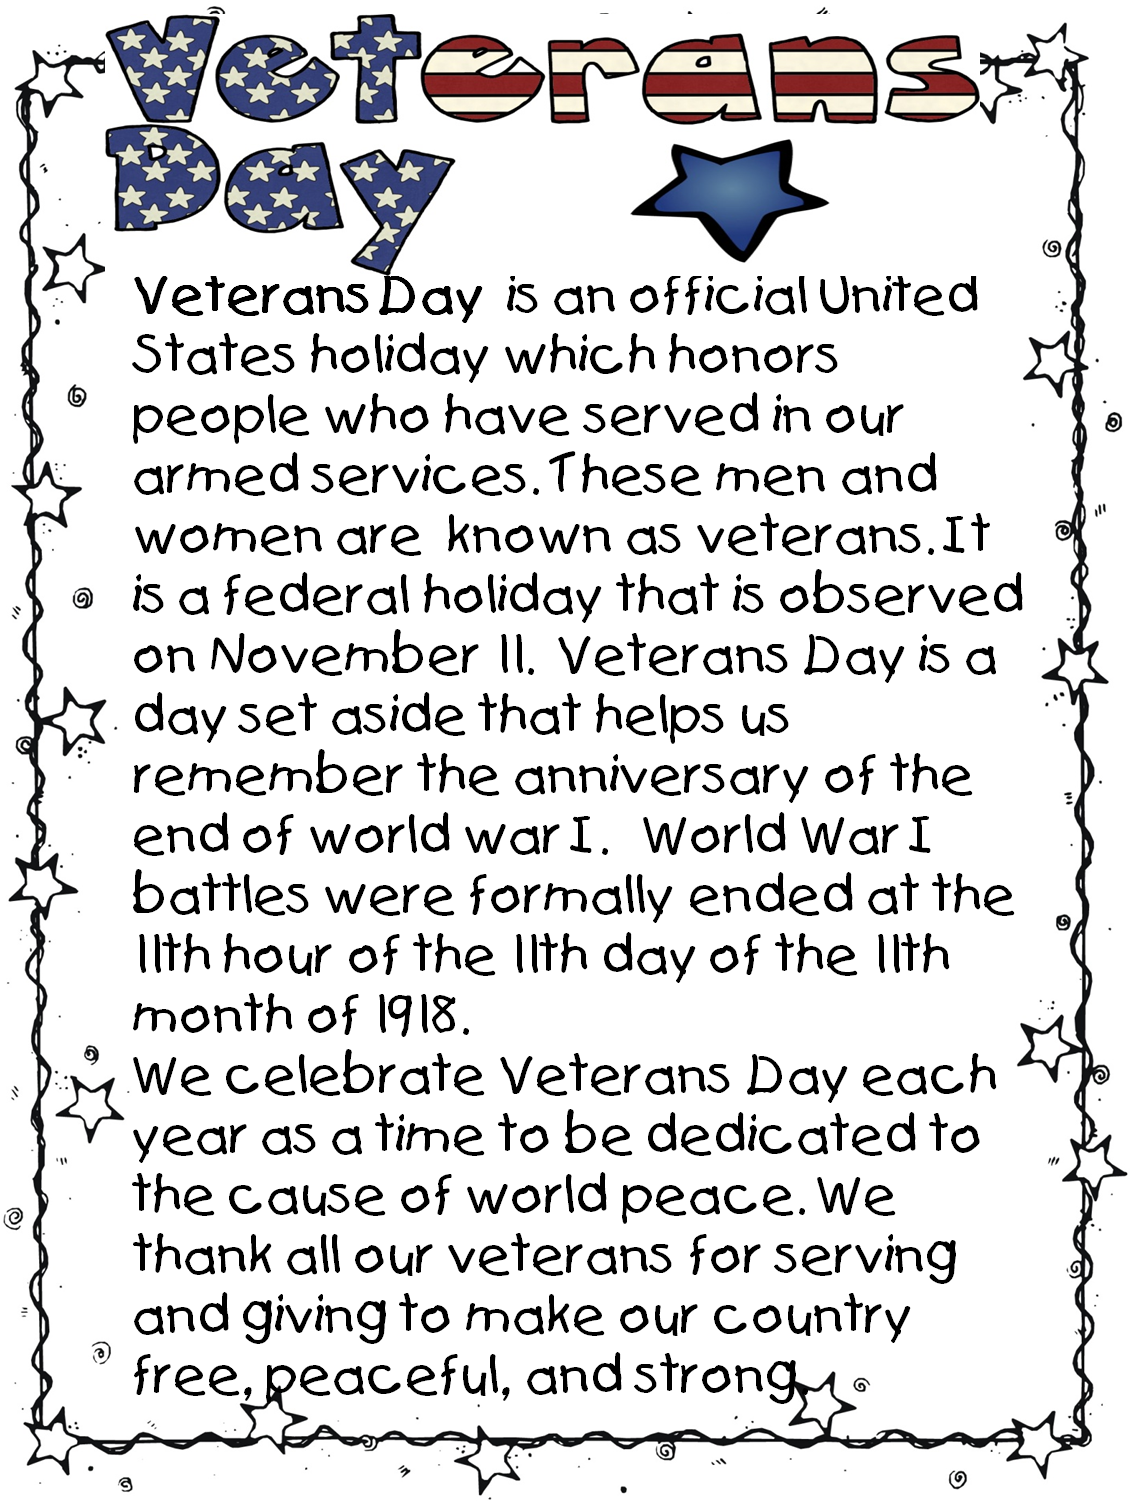 Veterans day facts pdf to excel